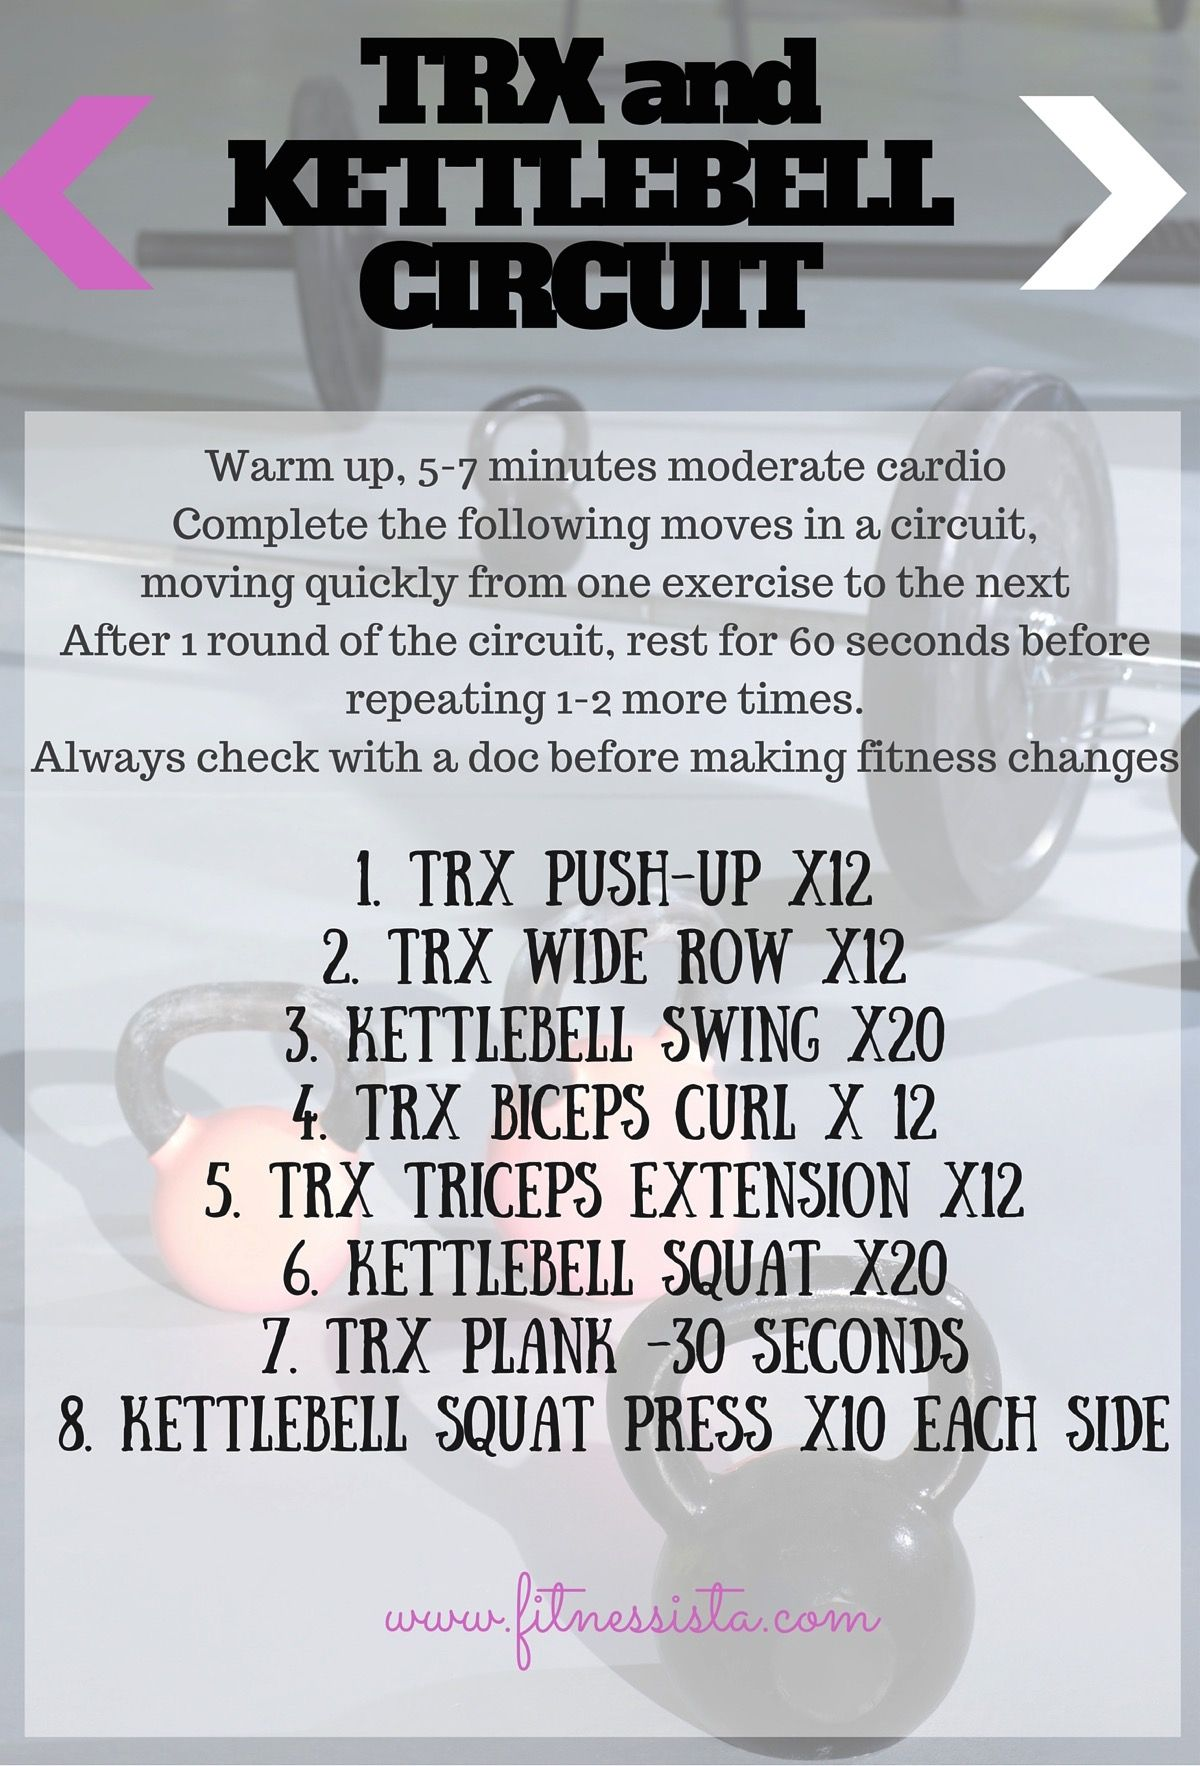 Its A Zoo Trx Kettlebell Circuit Workouts Routines Completecircuit1jpg And